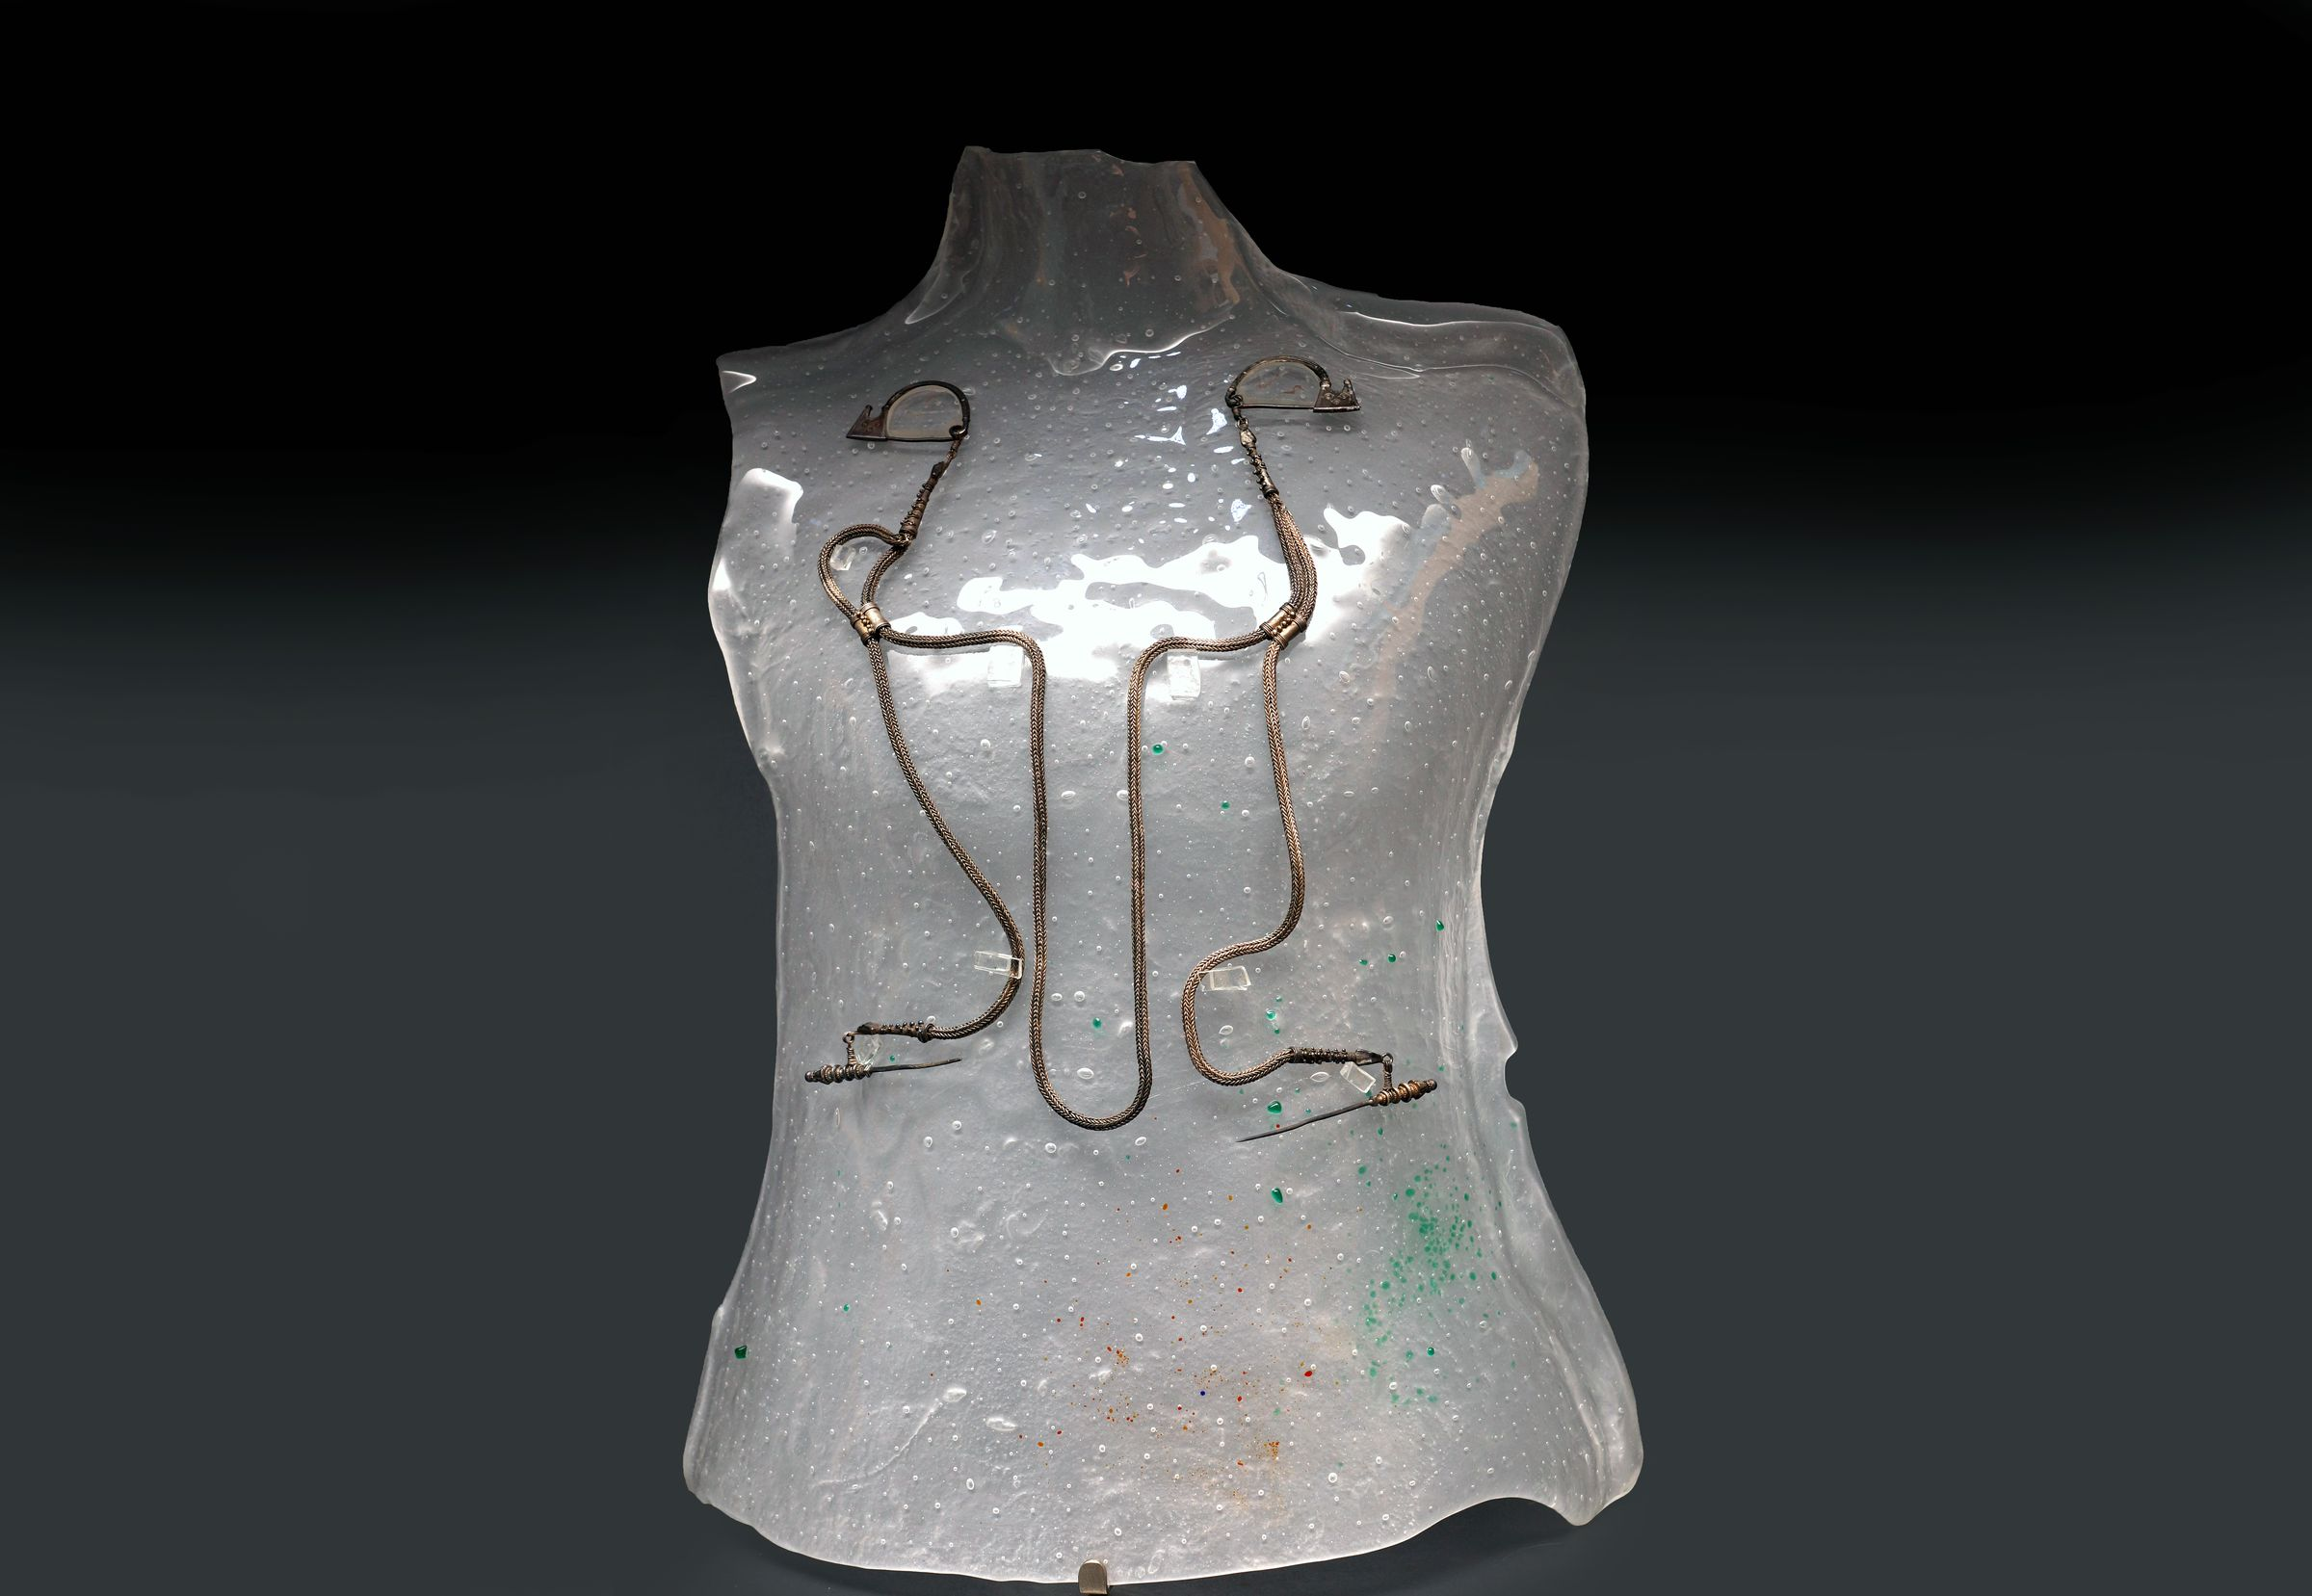 Silver jewelry from the Iron Age prince's tomb from Kruševica